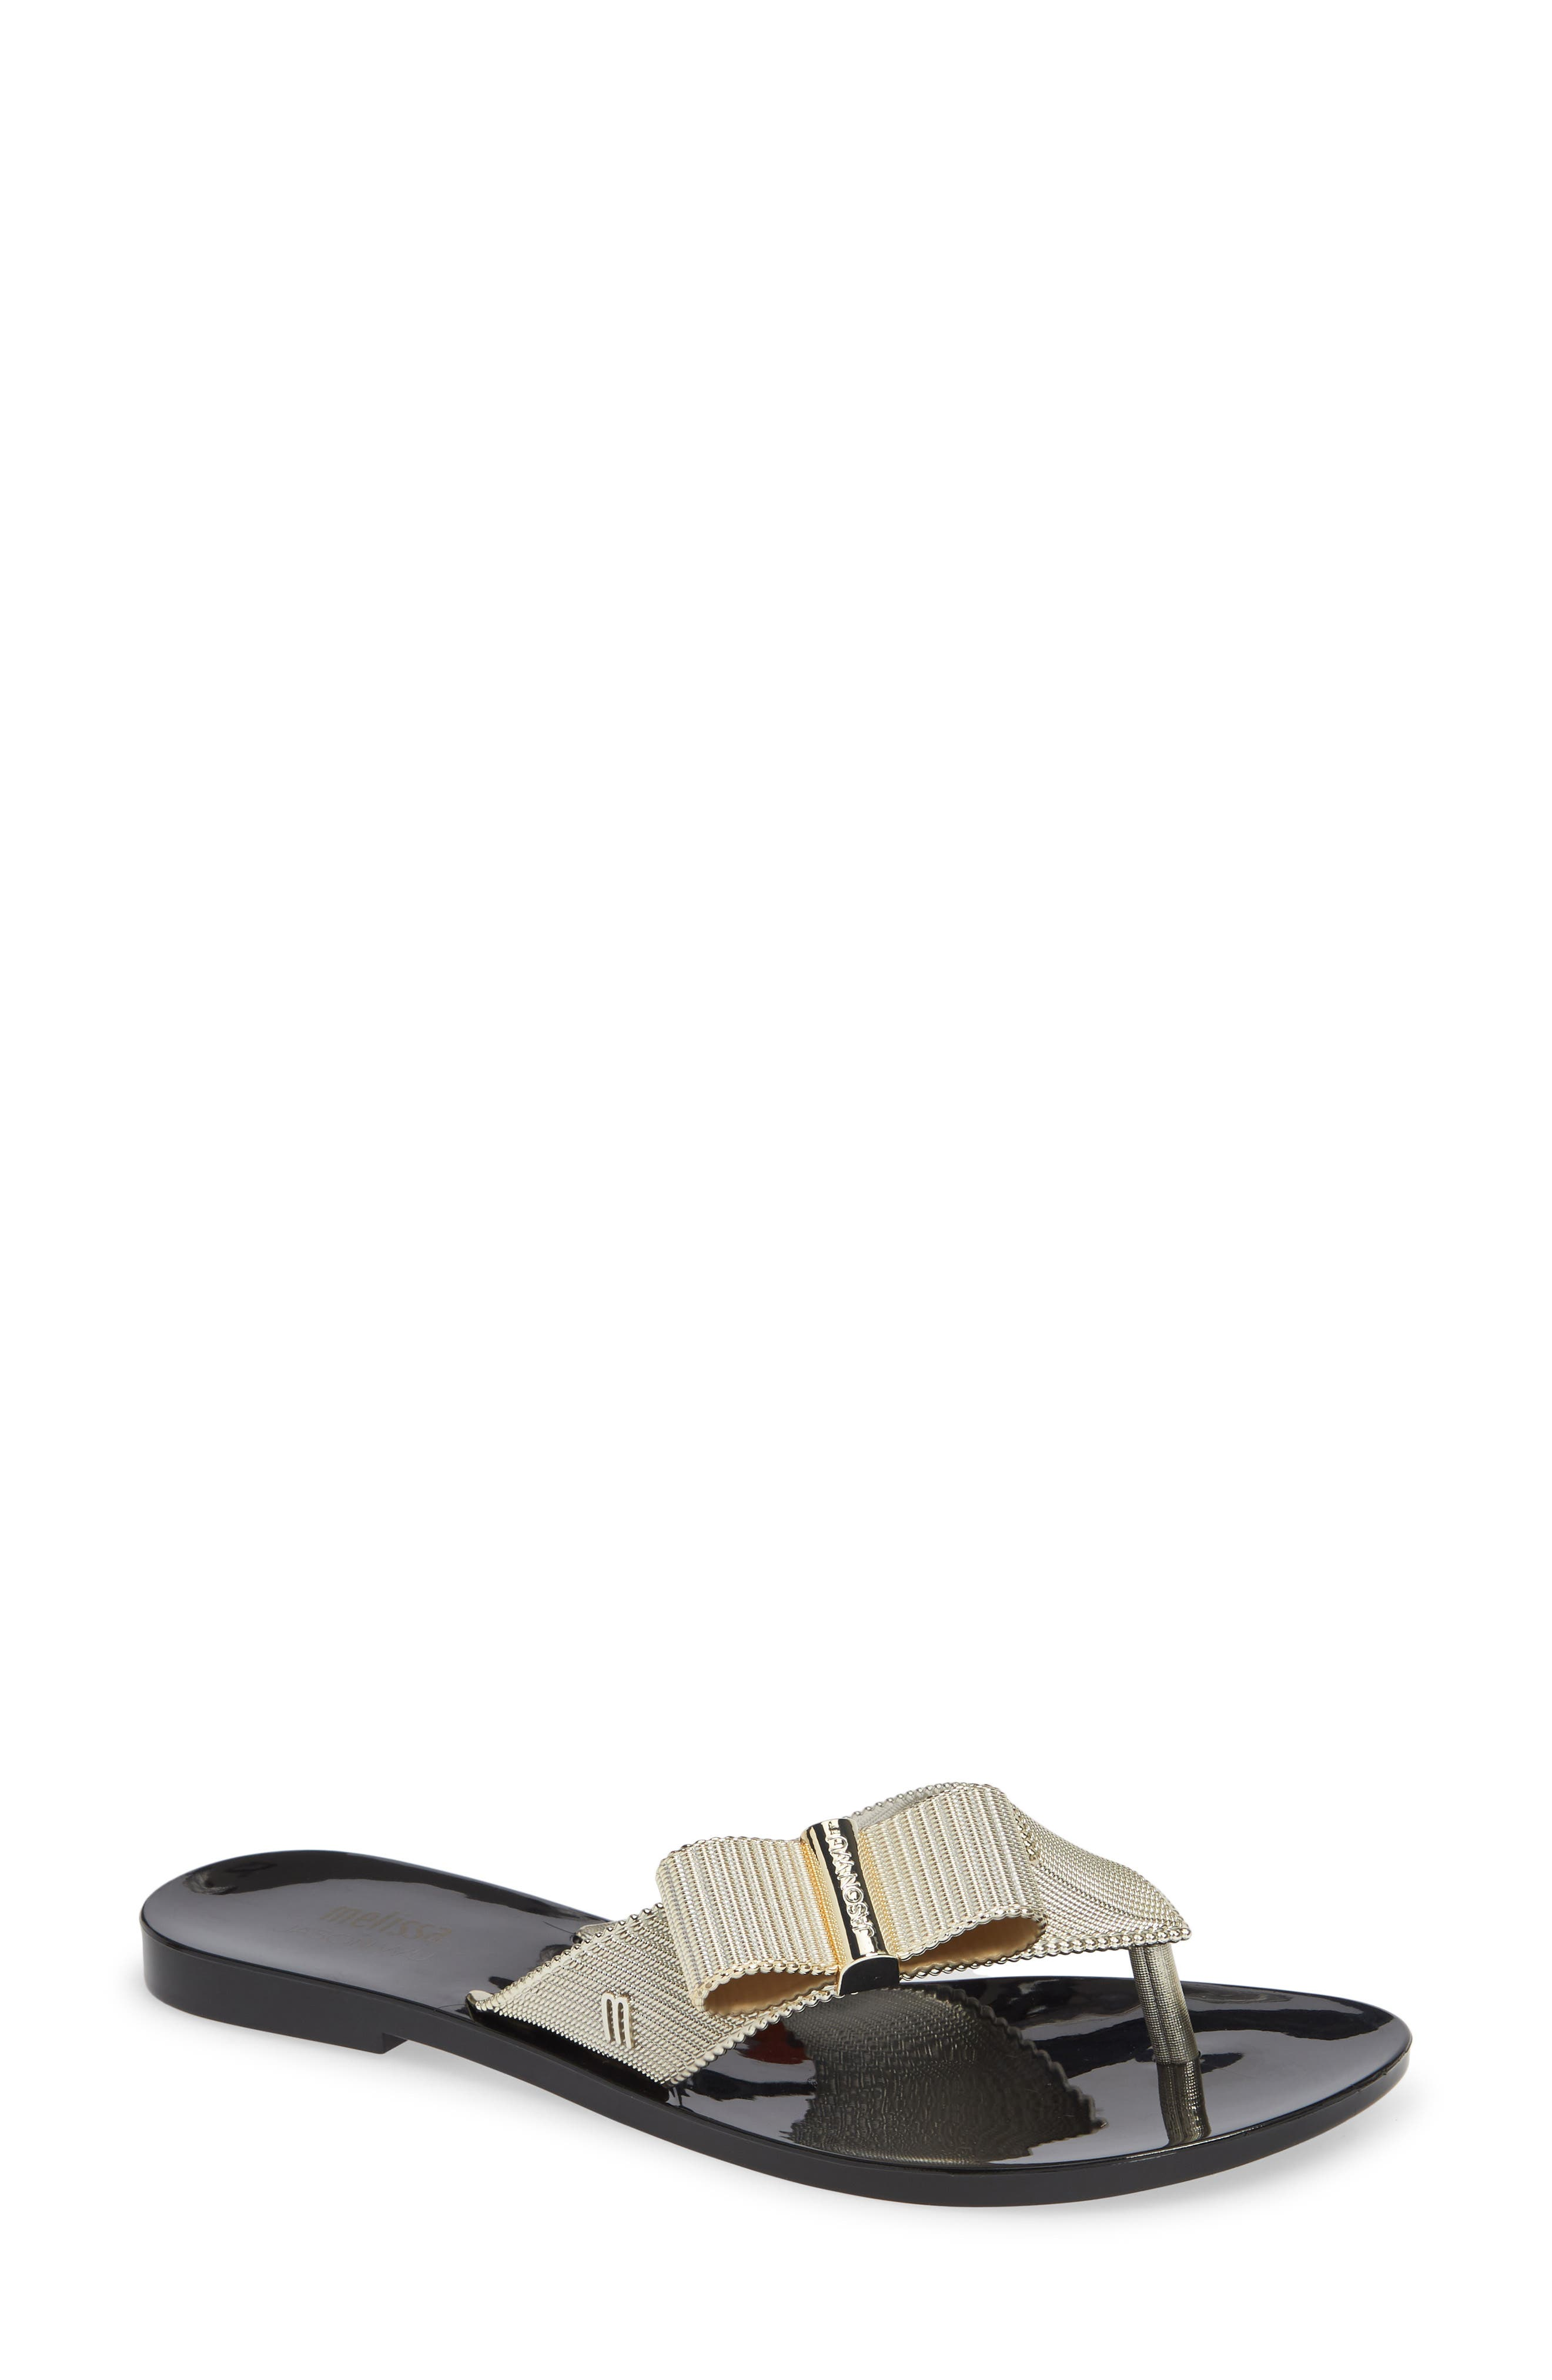 + JASON WU GIRL CHROME FLIP FLOP